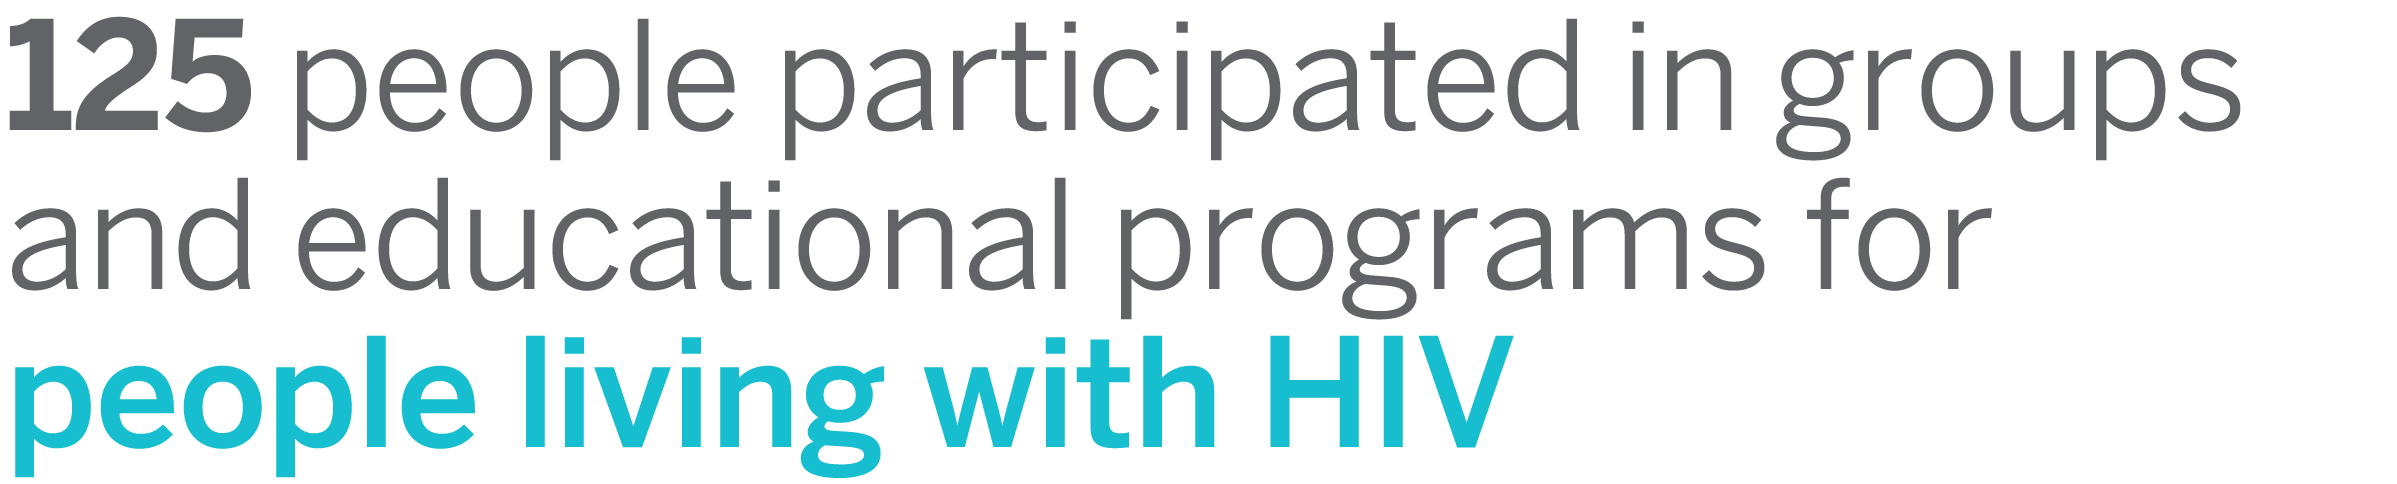 125 people participated in groups and educational programs with people living with HIV